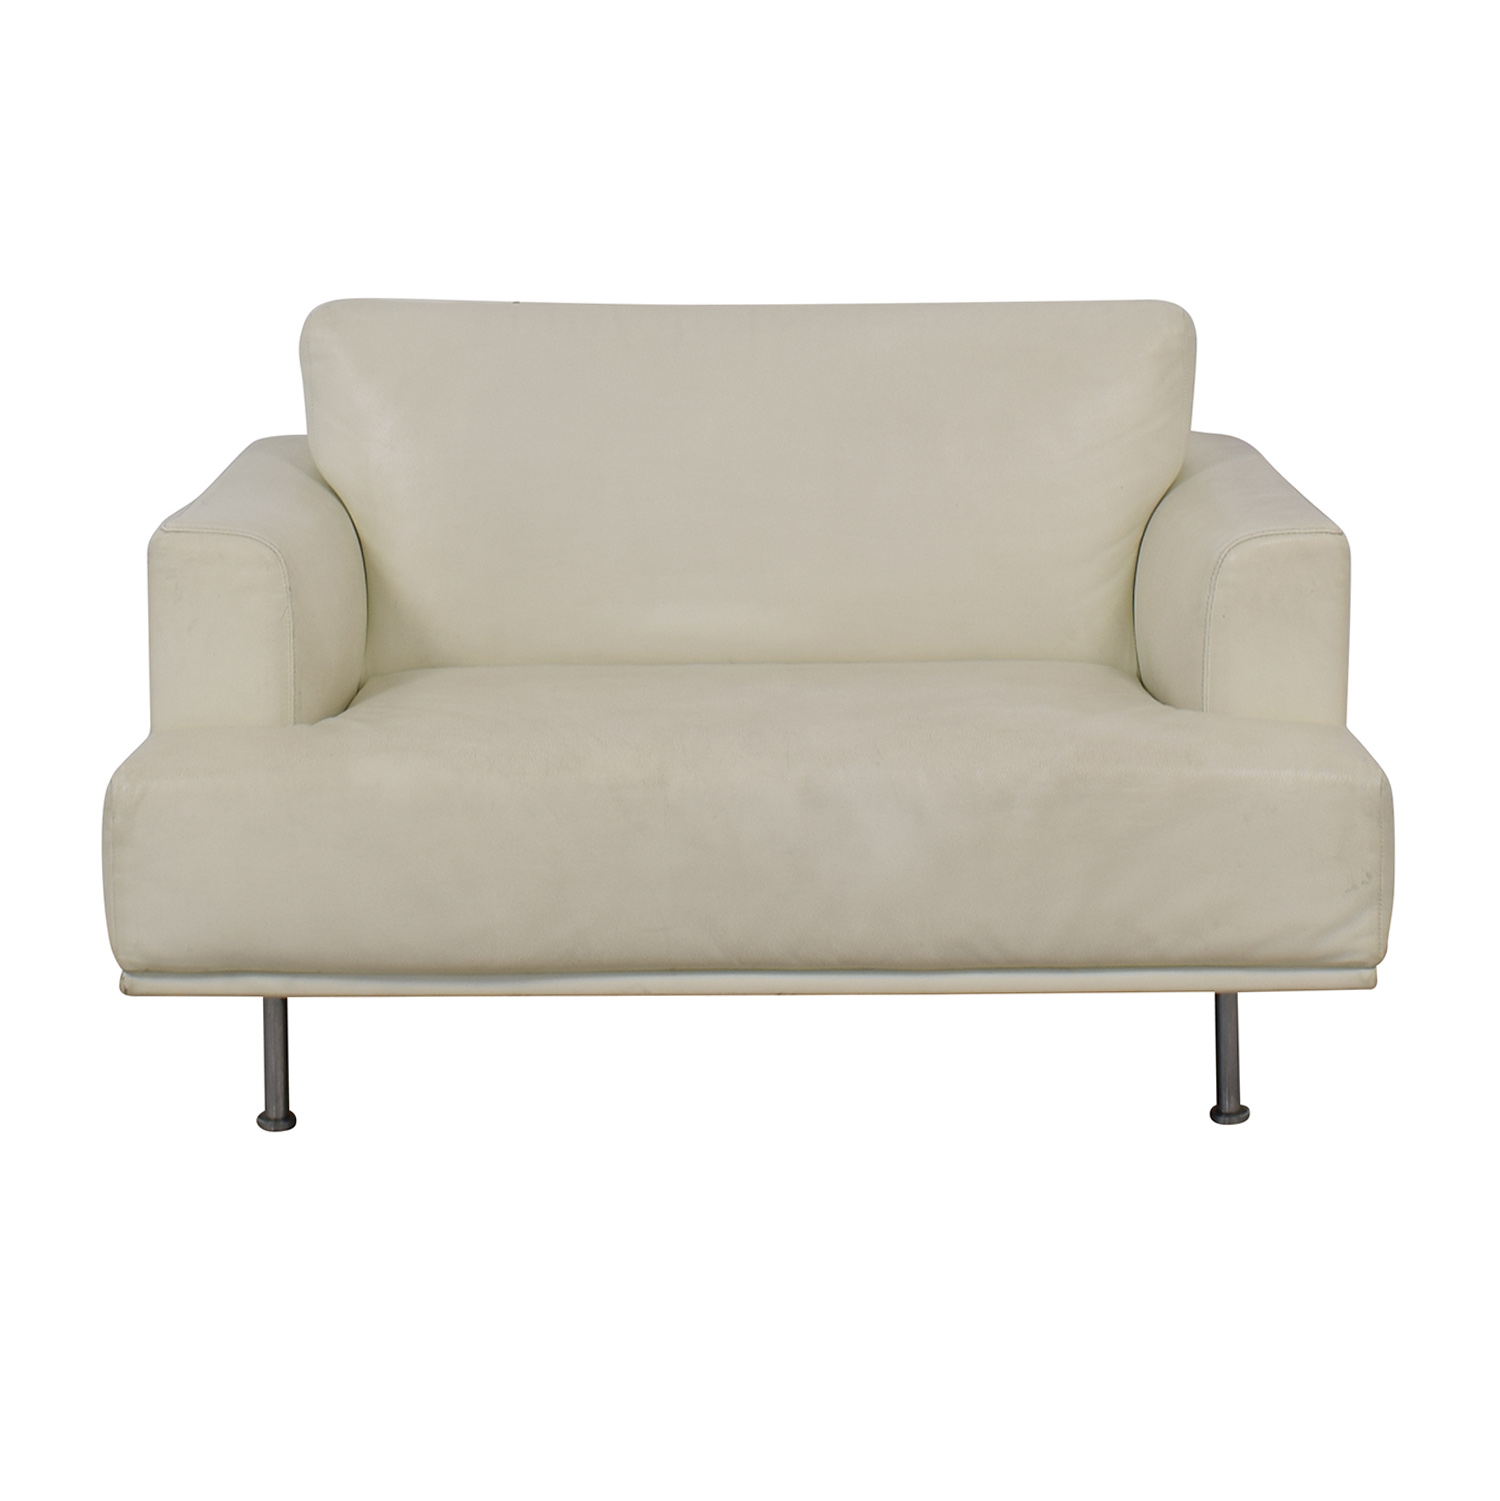 Cassina Cassina White Nest Sofa by Piero Lissoni price